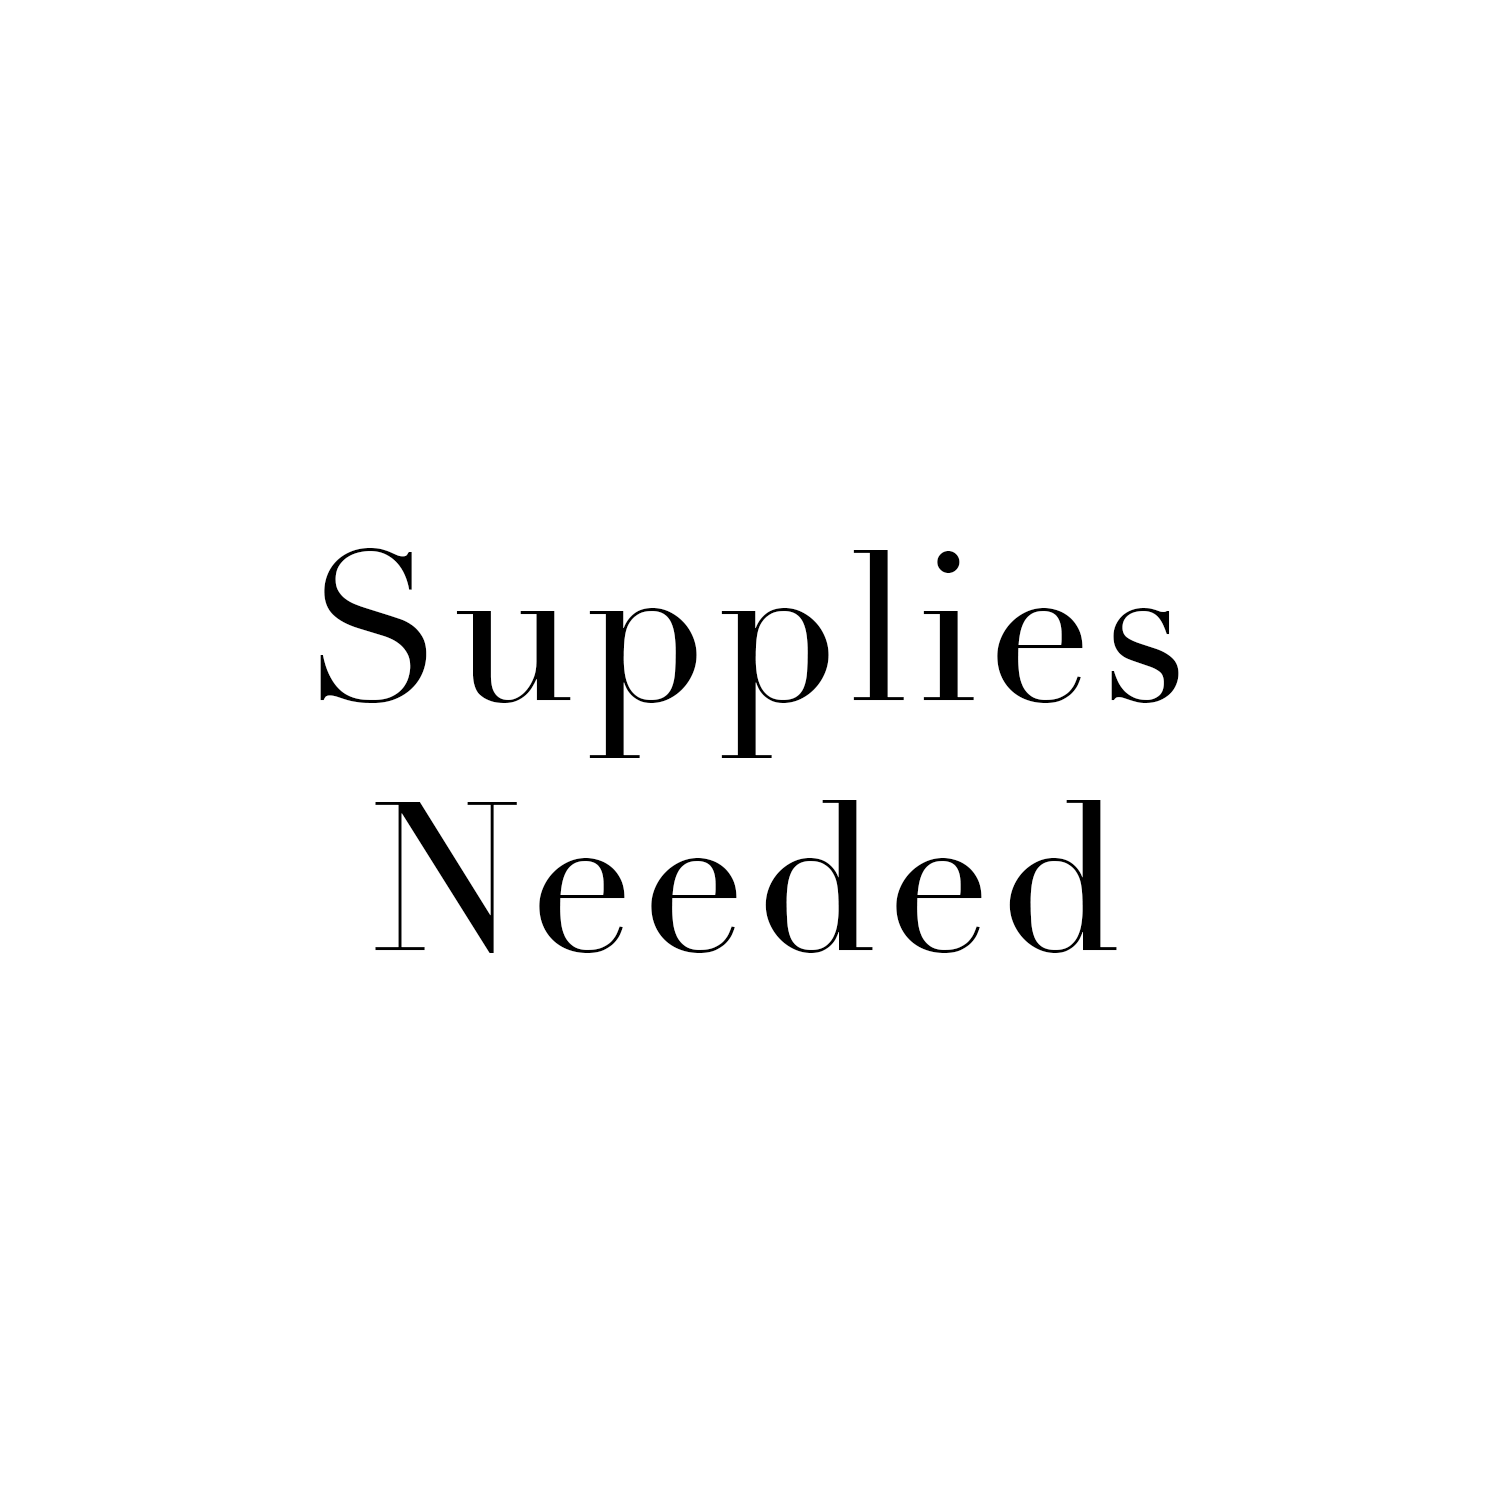 Supplies Needed.png